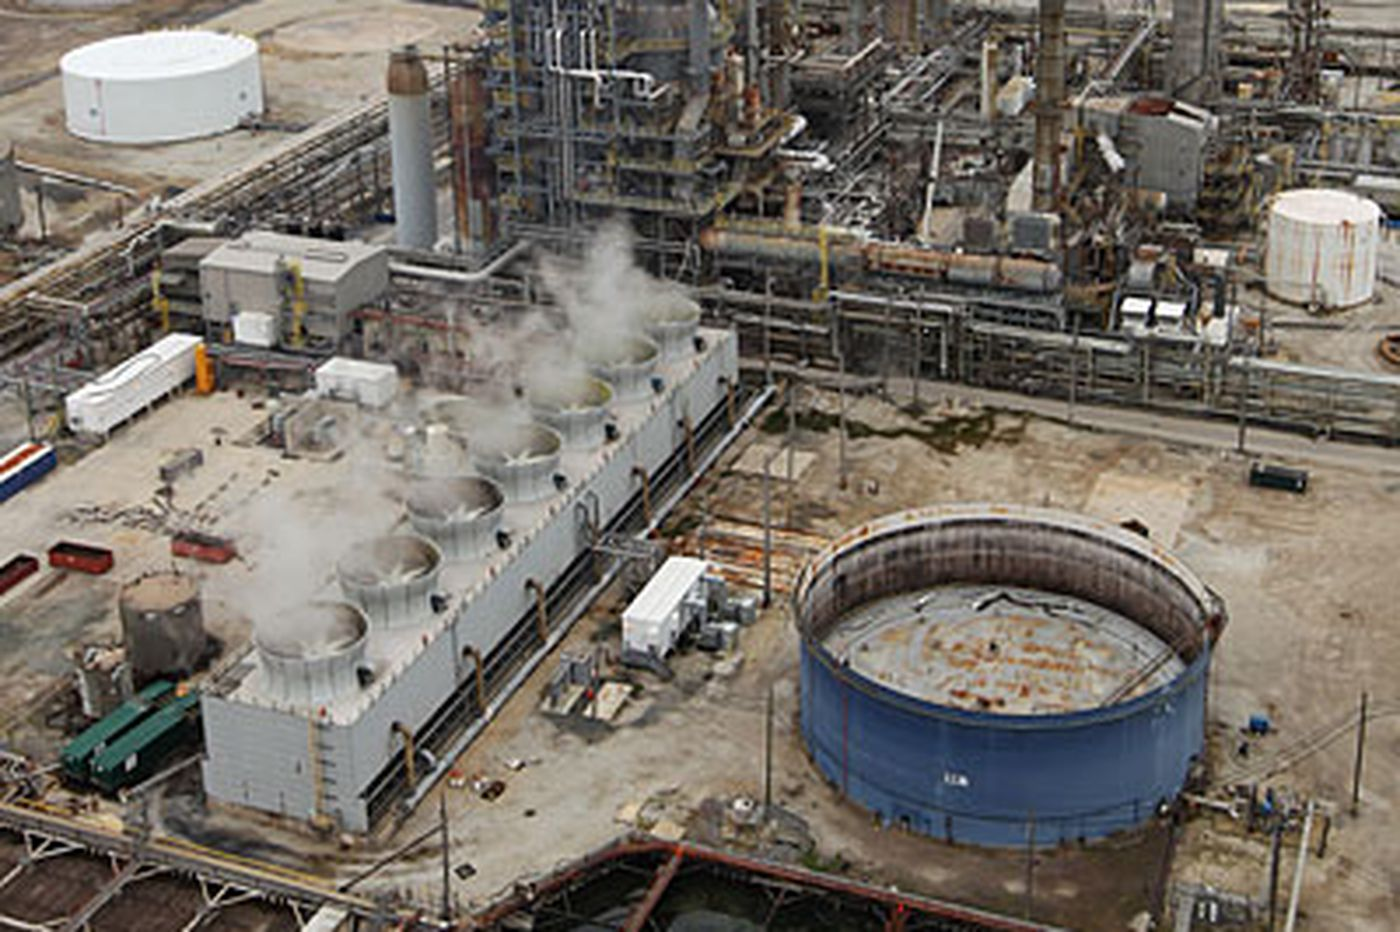 Study to seek uses for Marcus Hook refinery complex